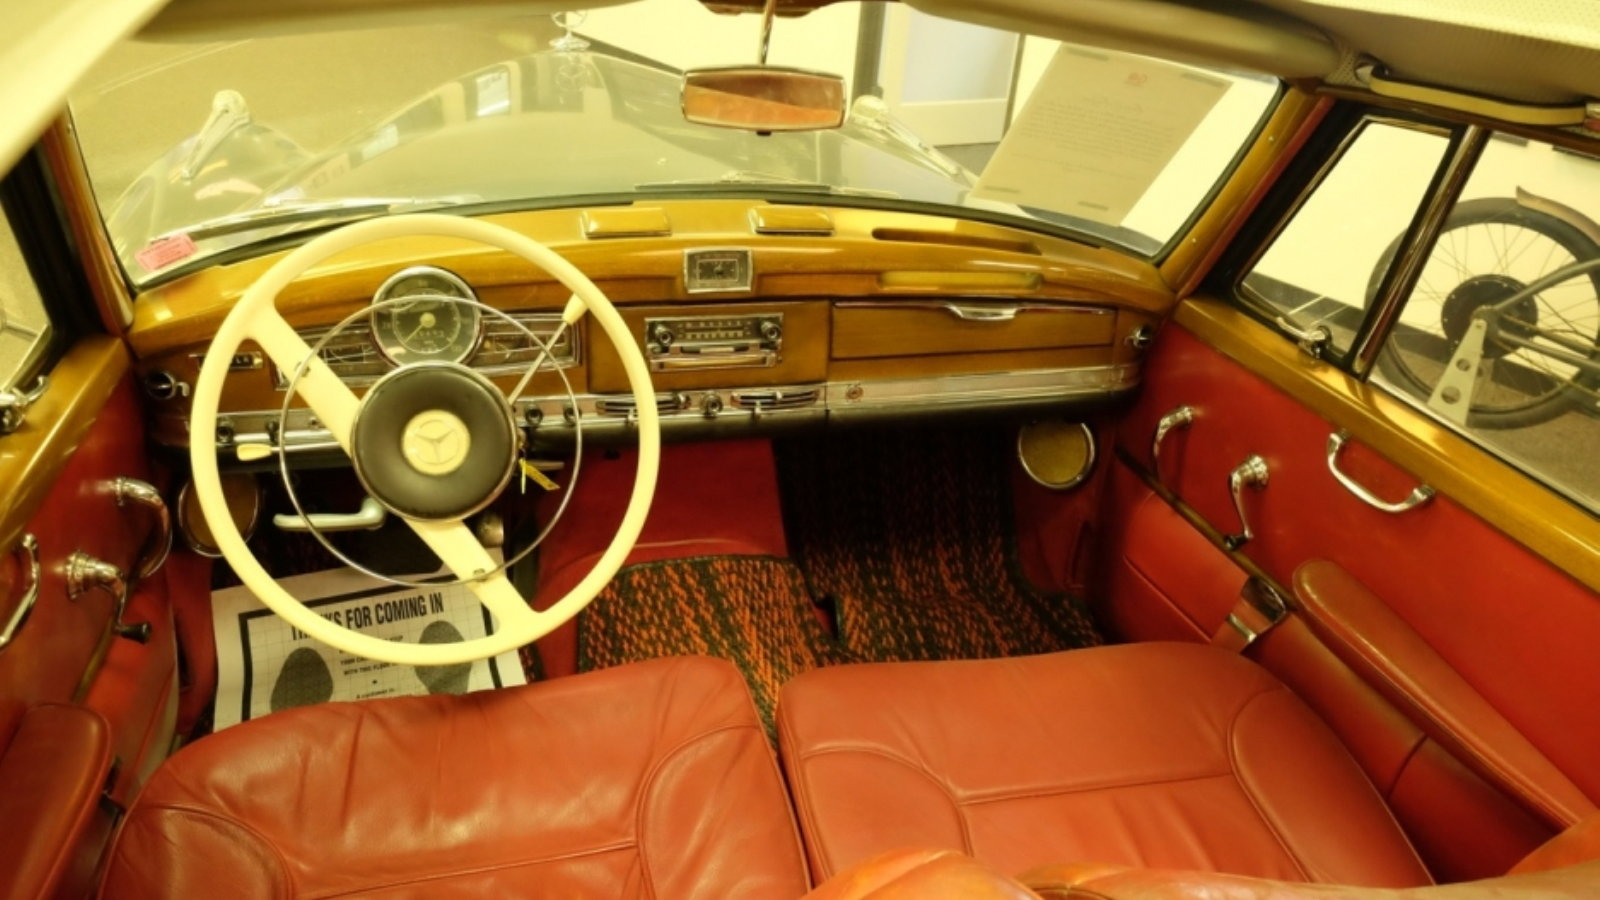 Jonathan Ward's Perfectly Kept 300D is Up For Sale